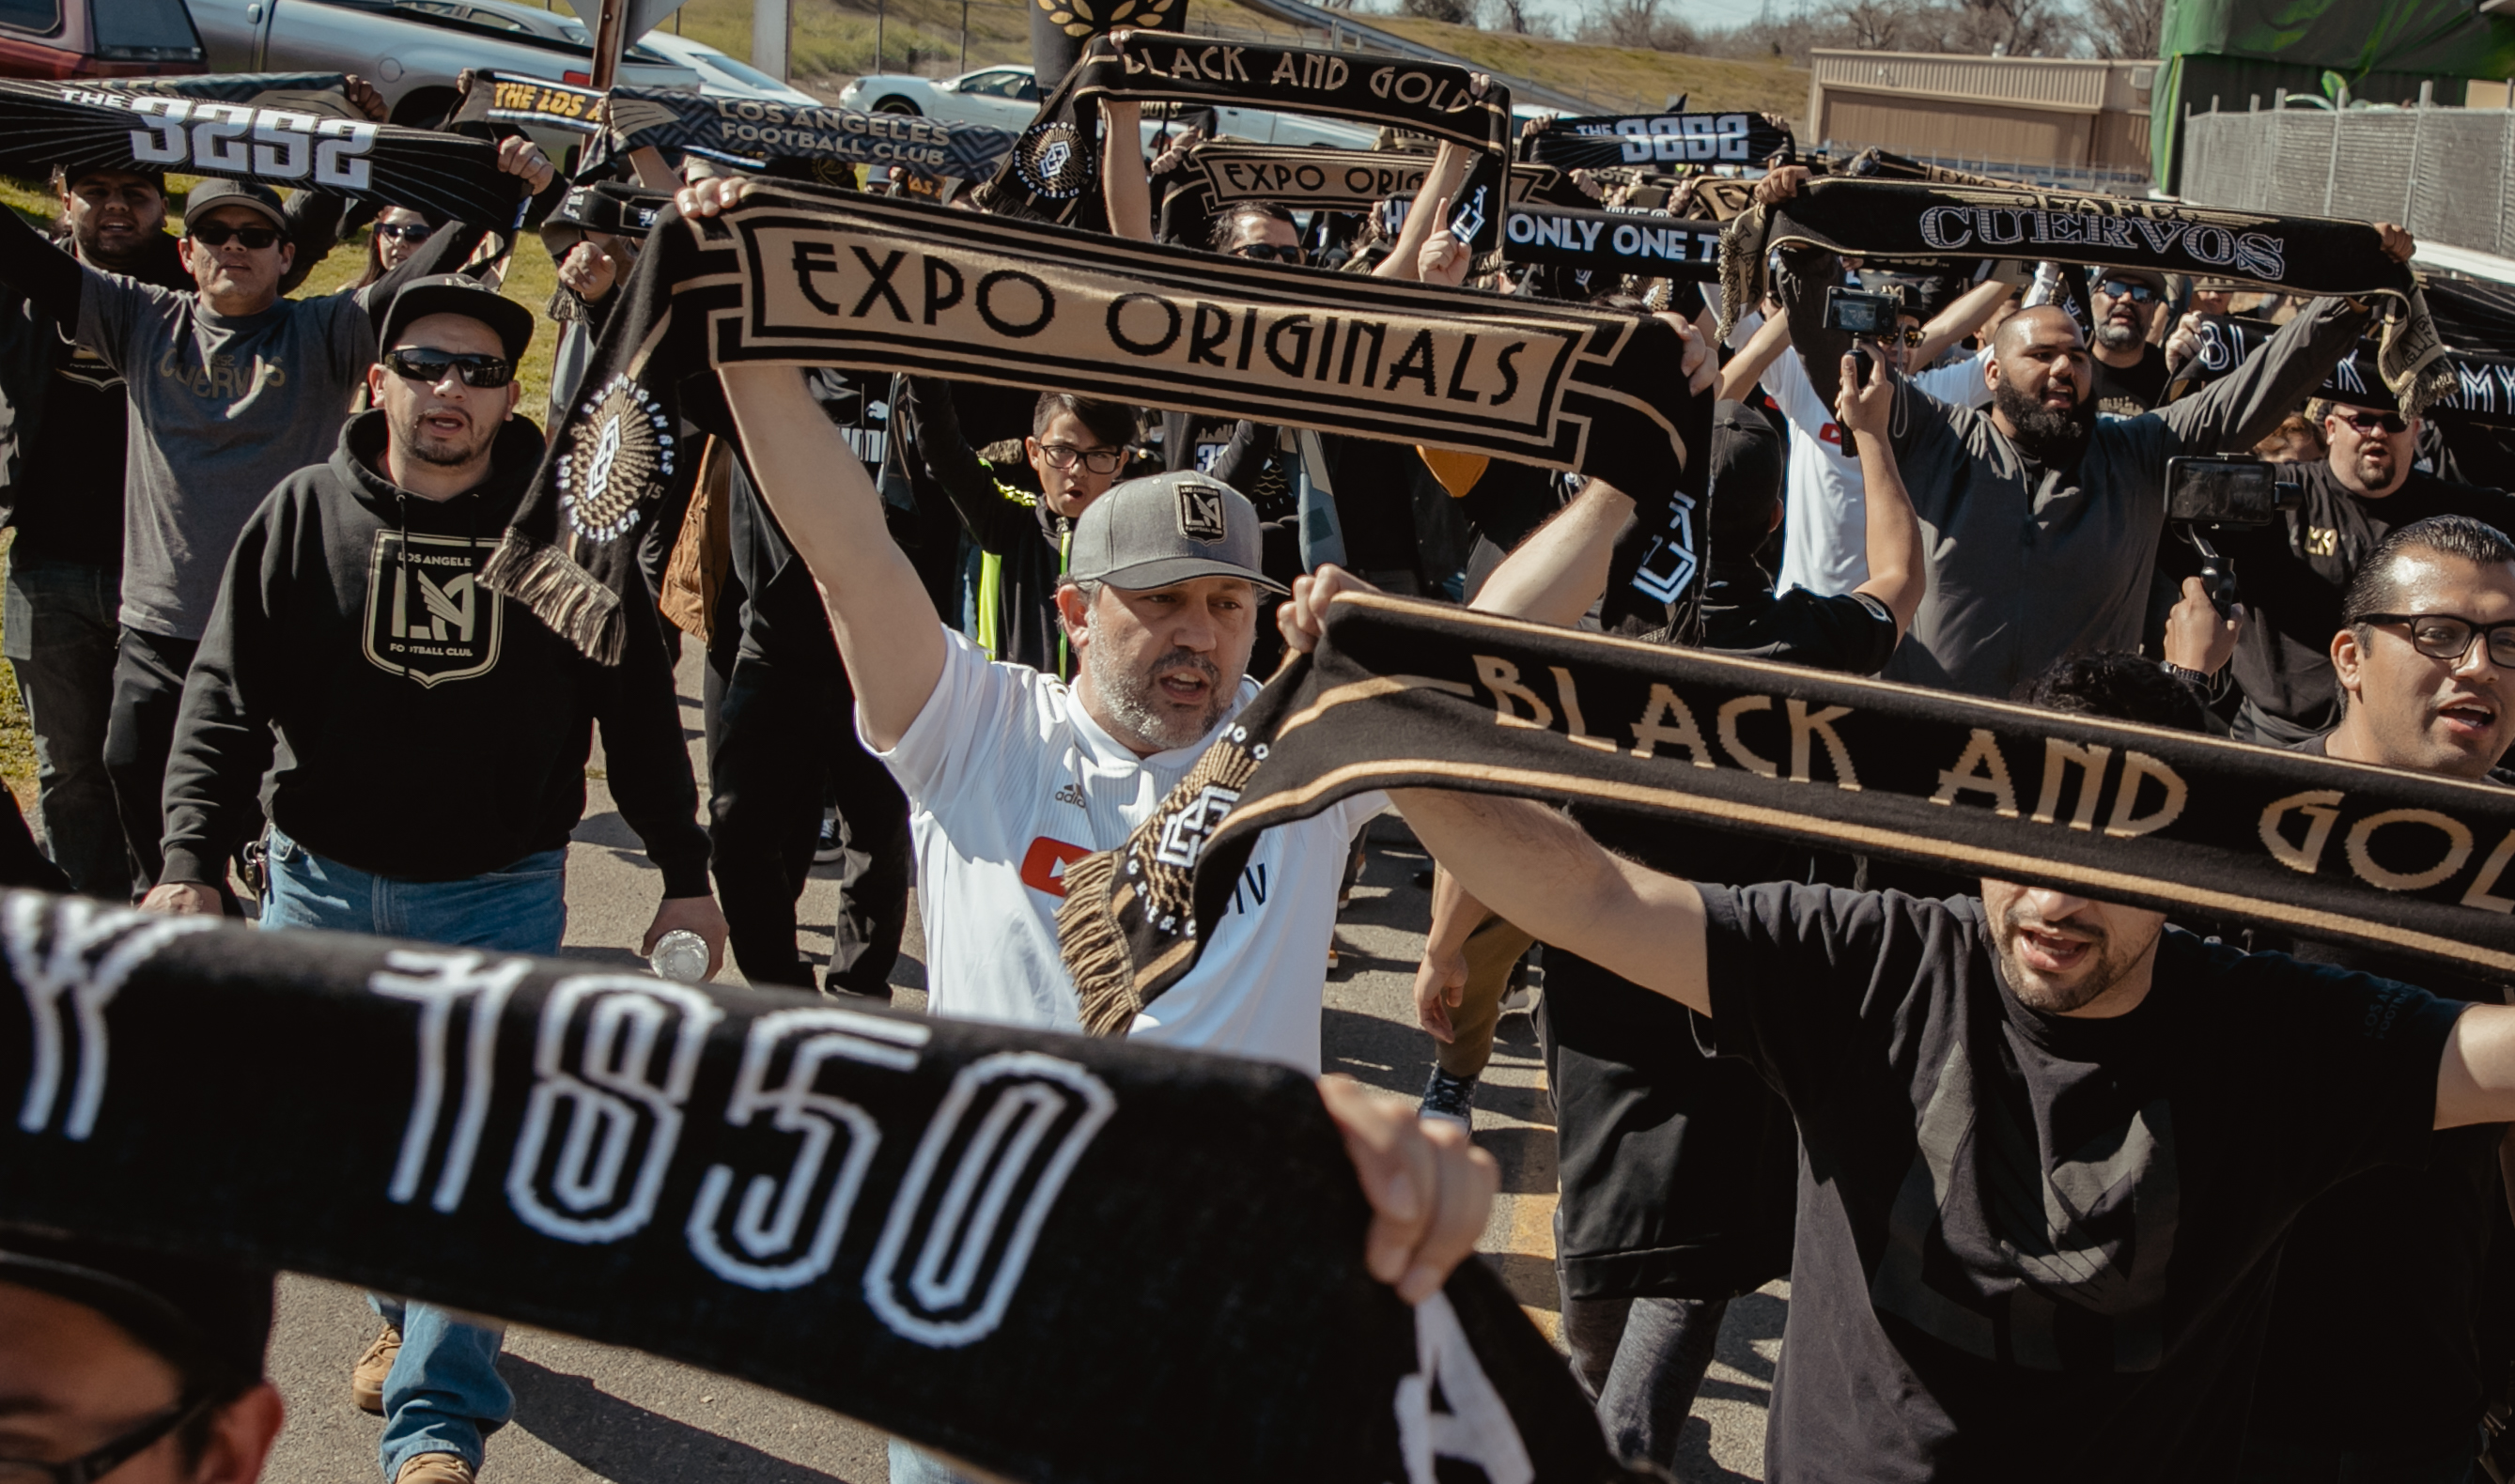 Heart Of The 3252: Expo Originals | Los Angeles Football Club